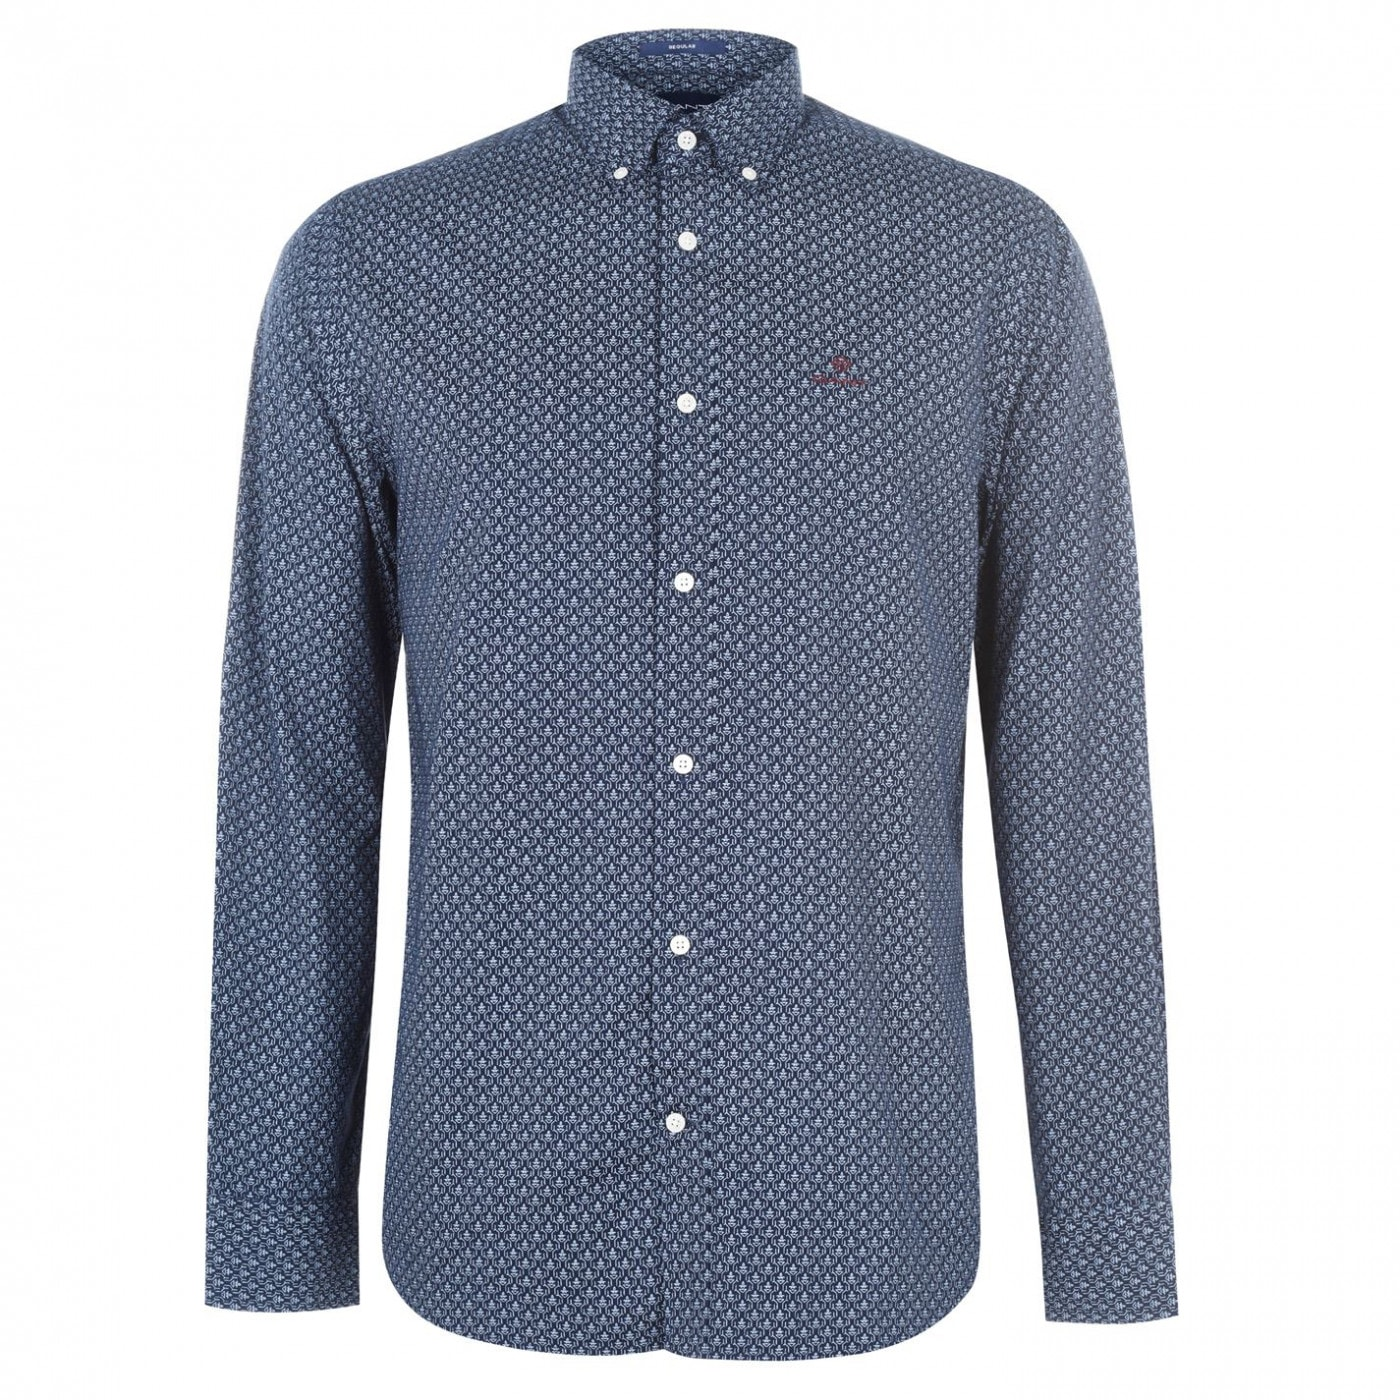 Gant Micro Print Long Sleeve Shirt